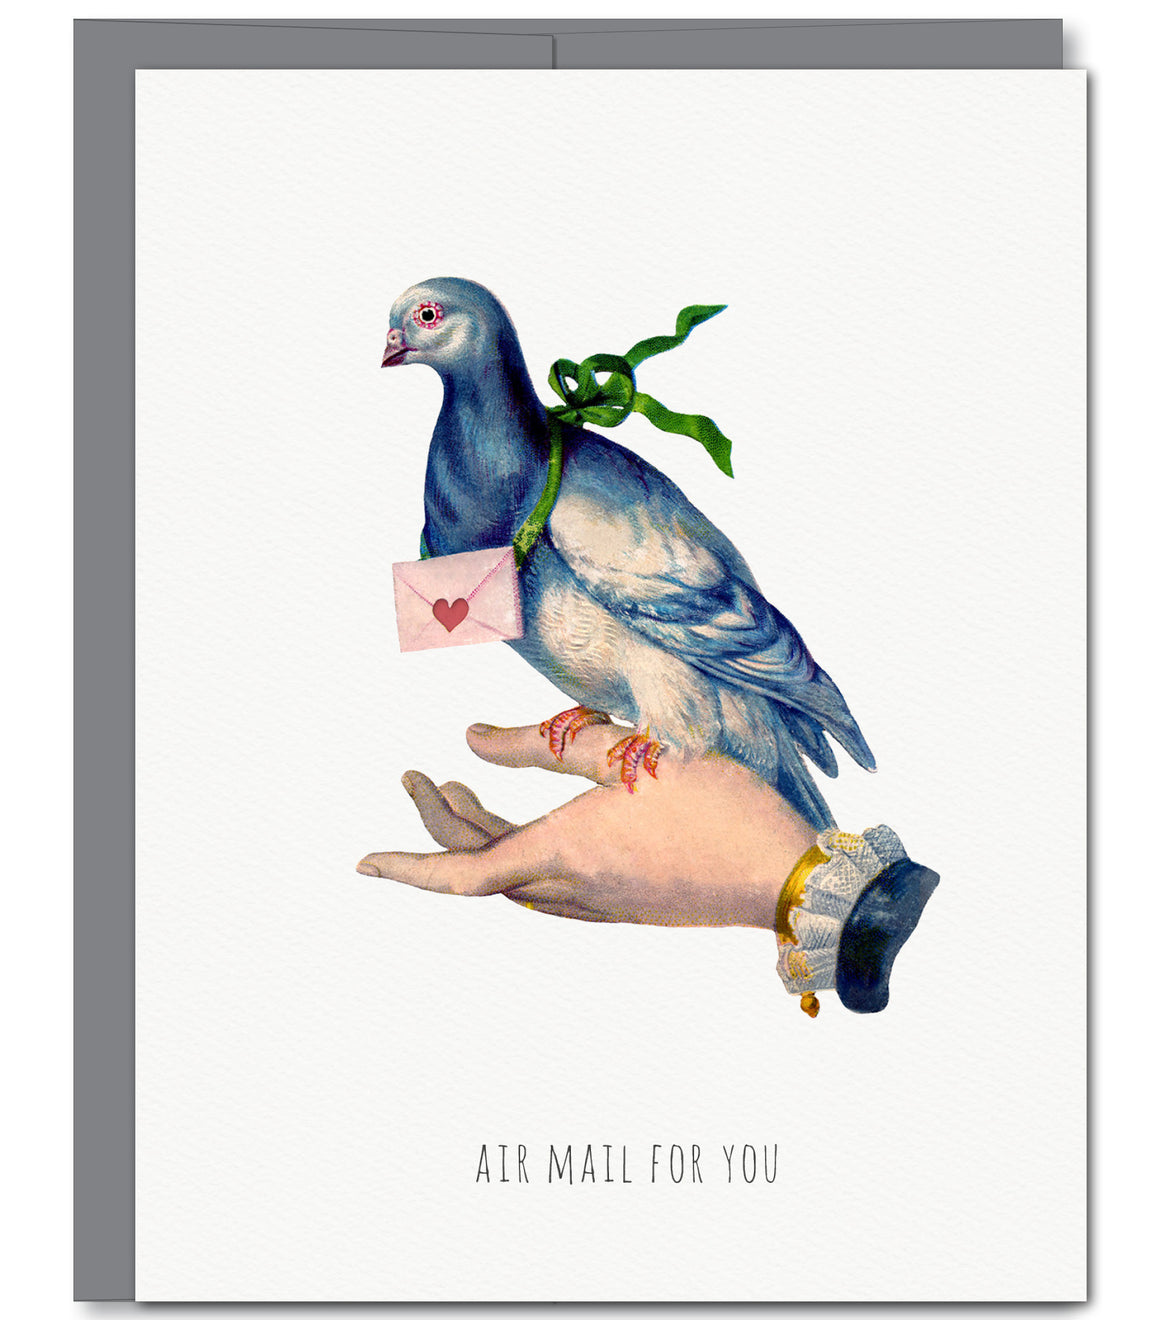 Air Mail Everyday Glitter Greeting Card | Sylvan Gate Design